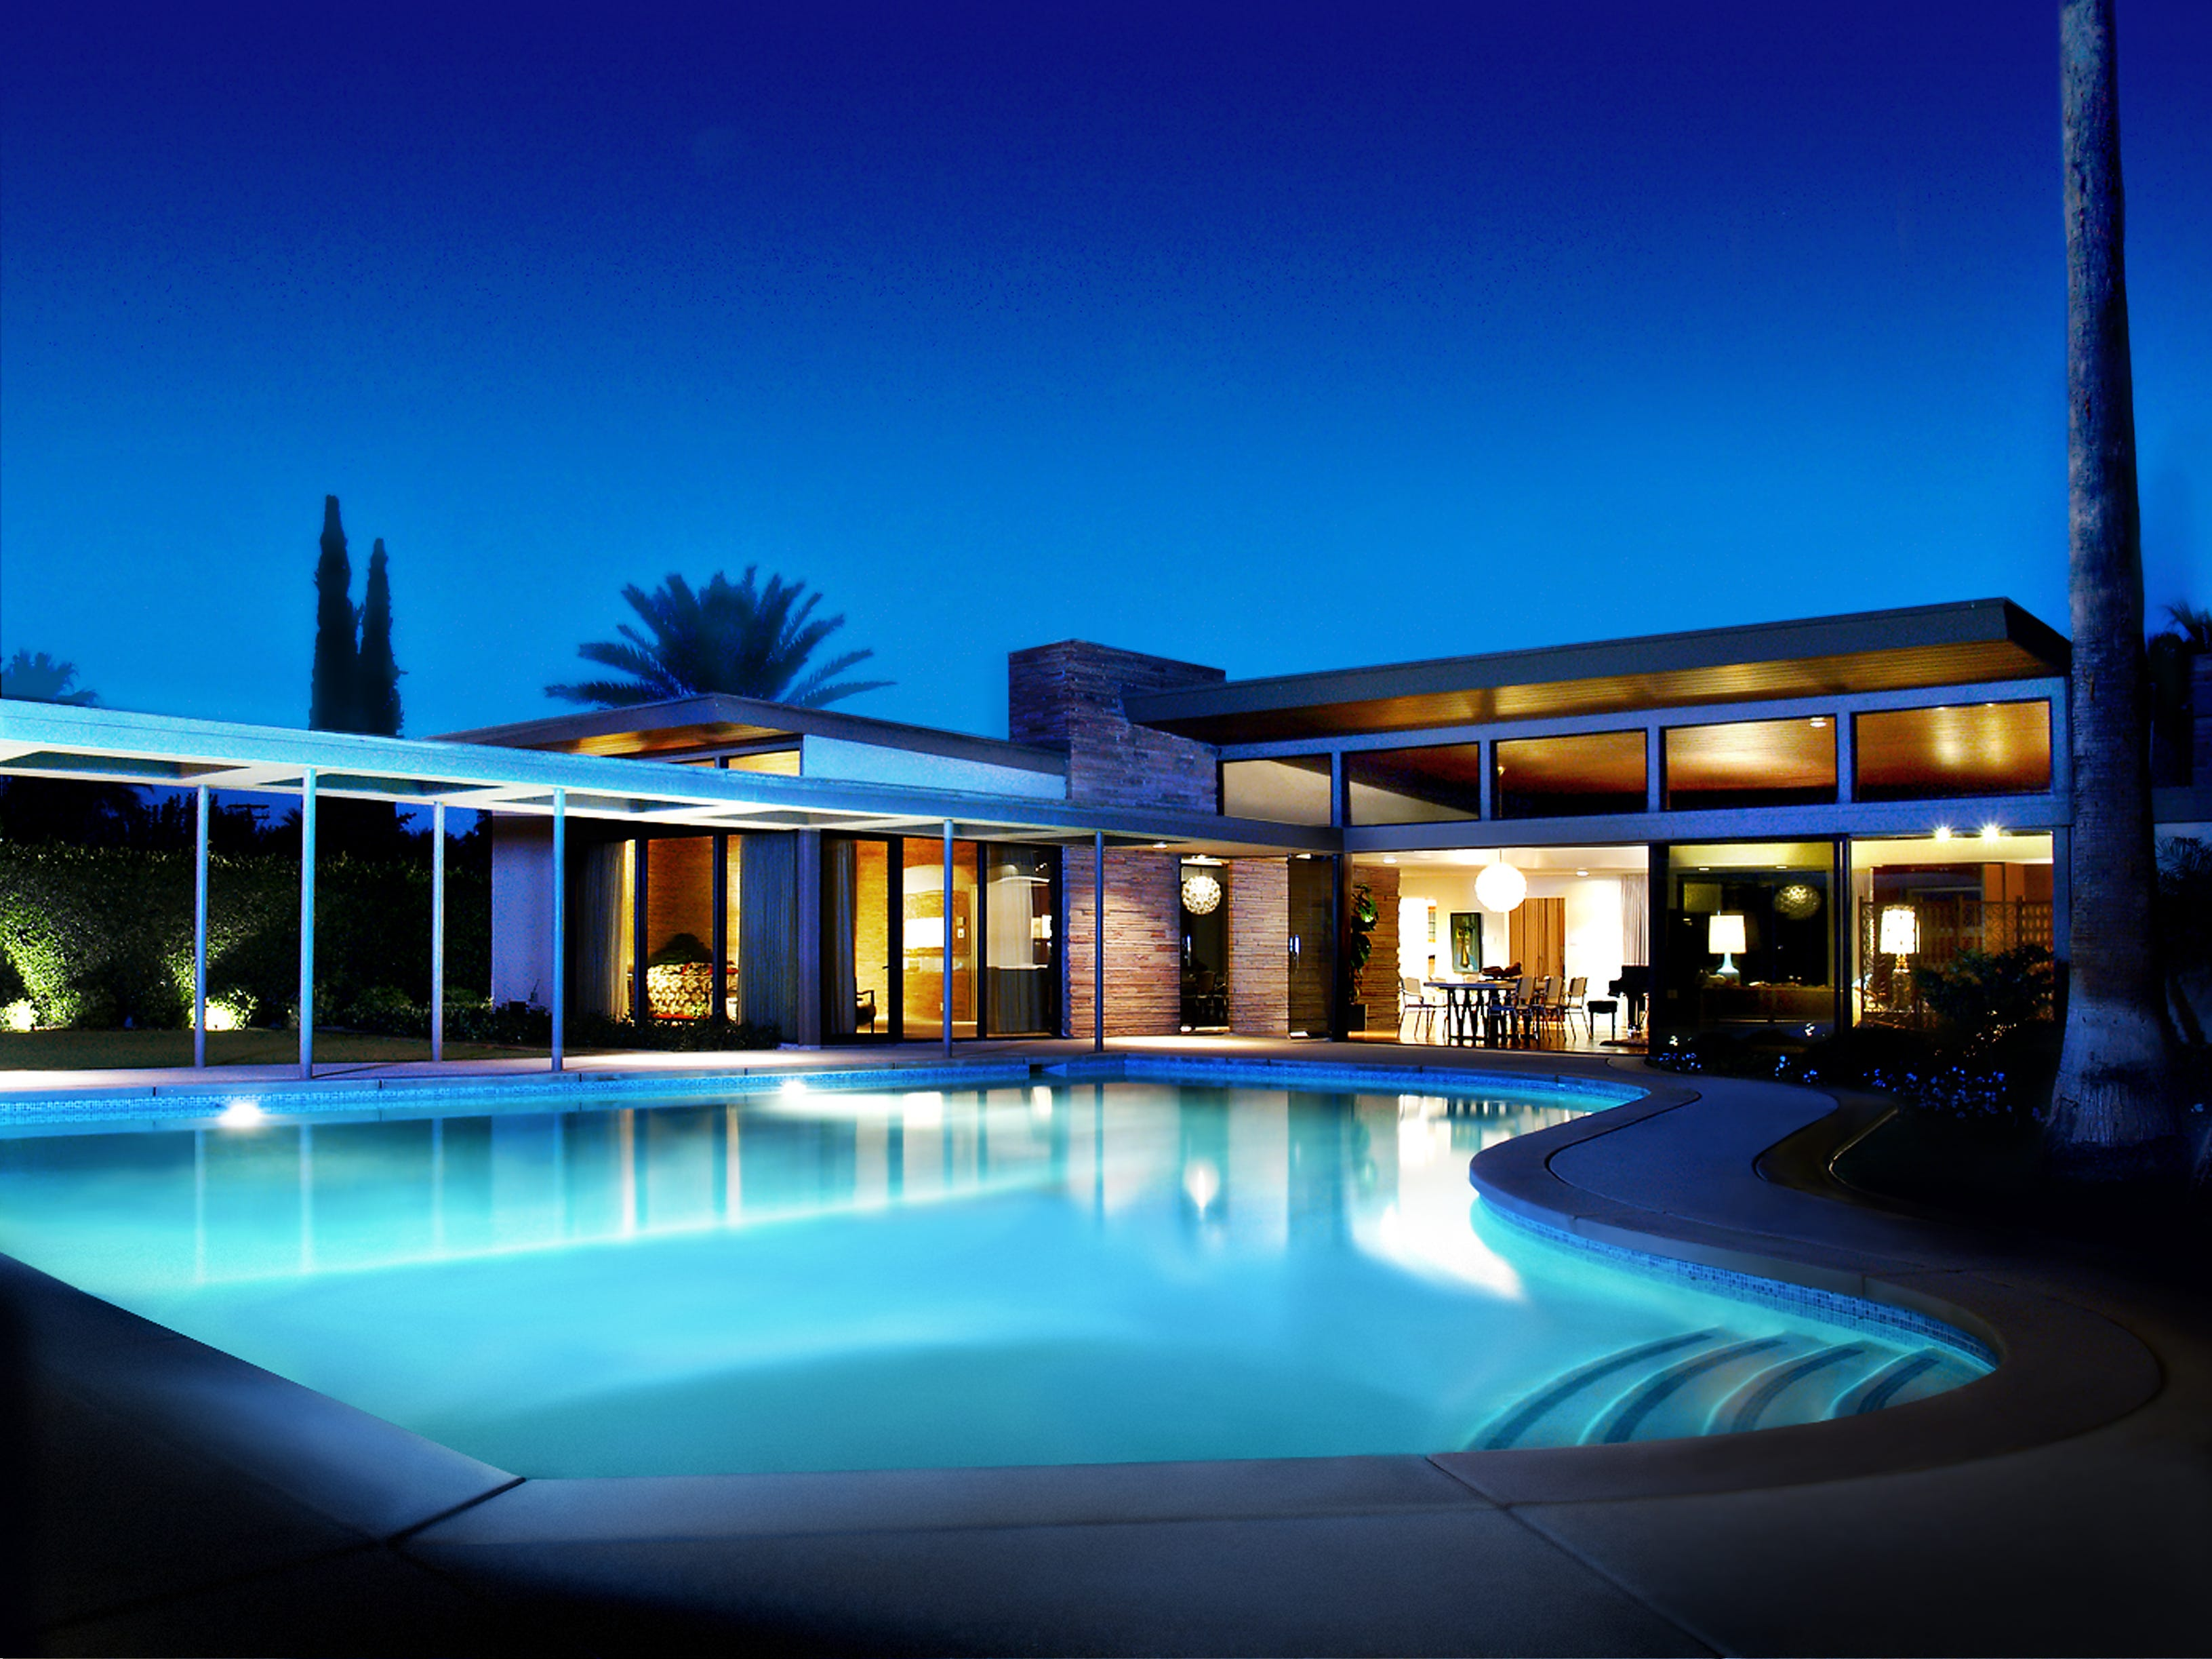 The Sinatra House by E. Stewart Williams in Palm Springs